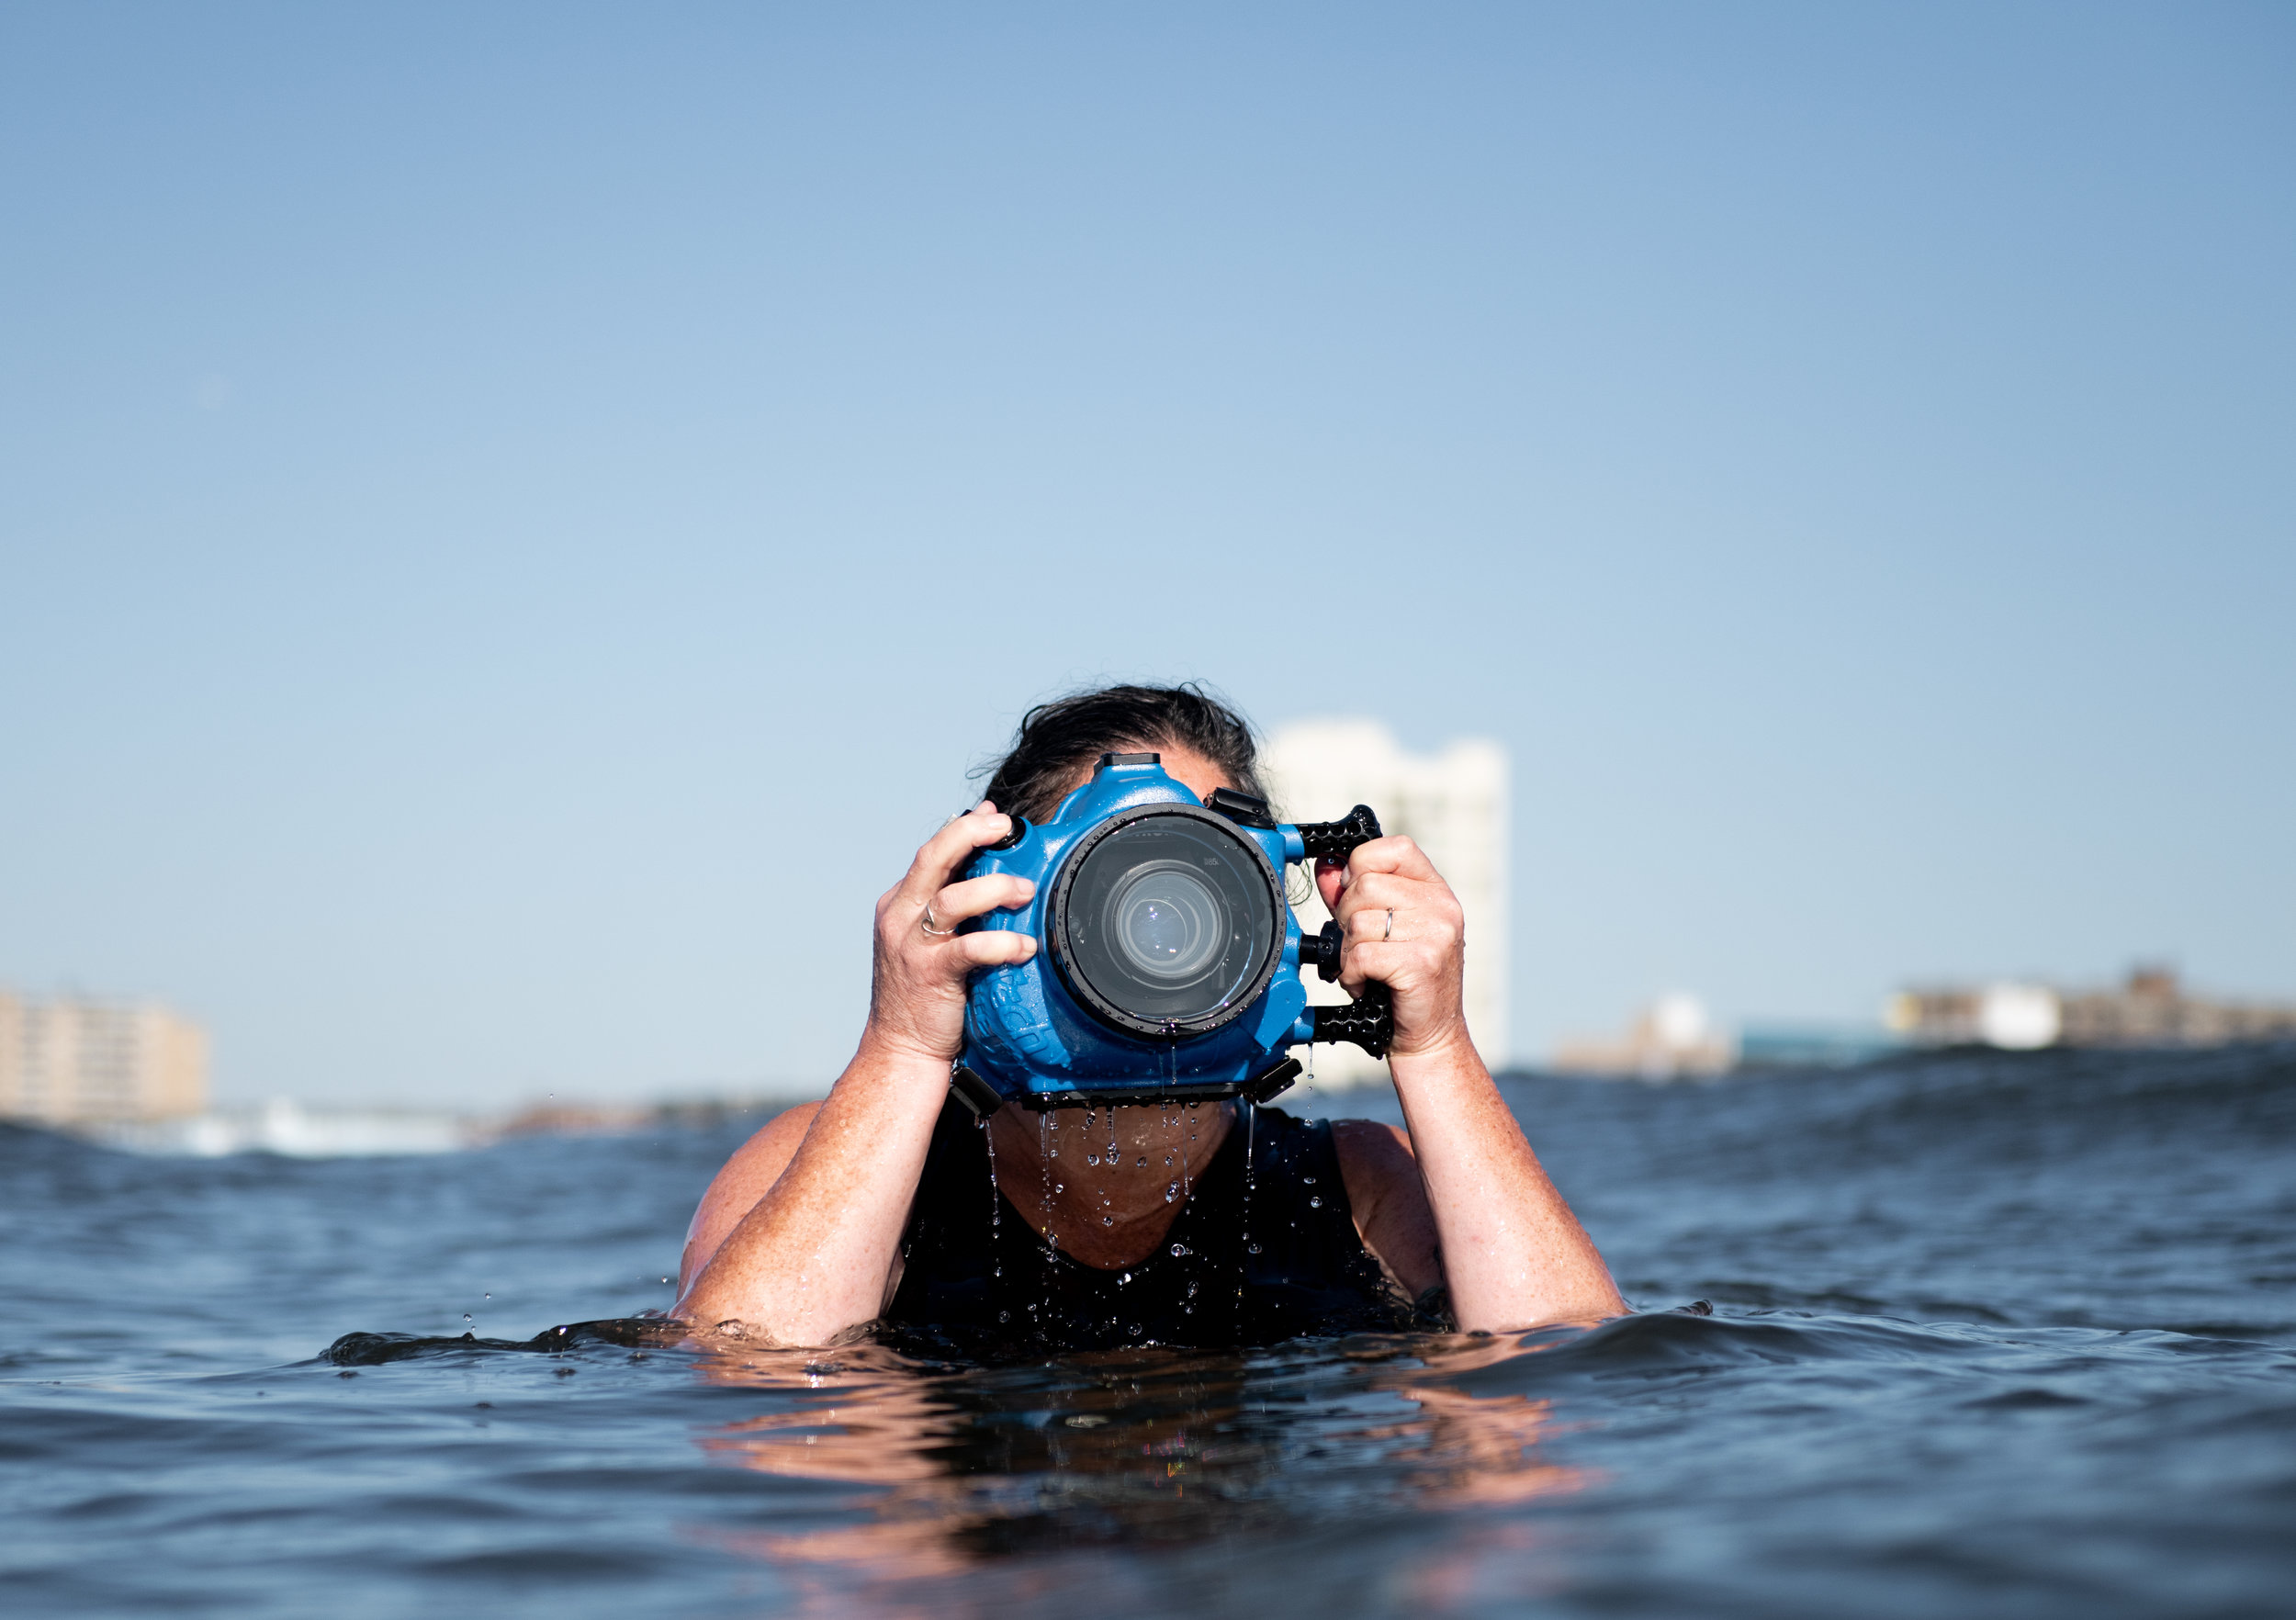 Surfer Photo Sessions - Schedule a one-0n-one surf photography session 7 days a week. (Photo of Riley by Bryanna Bradley.)